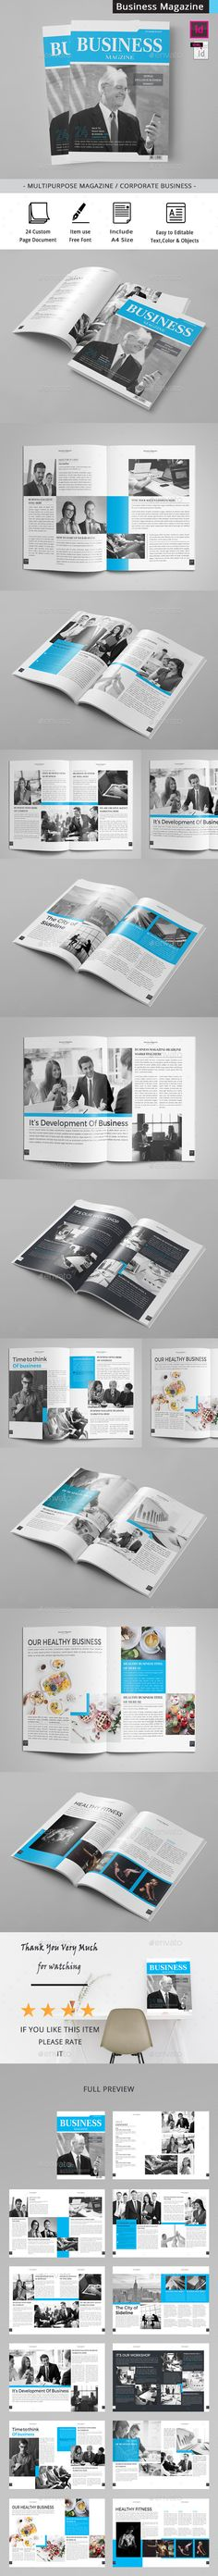 The Business Magazine by obayes Brochure Description:The Business magazine / Clean & Professional Magazine Template that is super simple to edit and customize wi